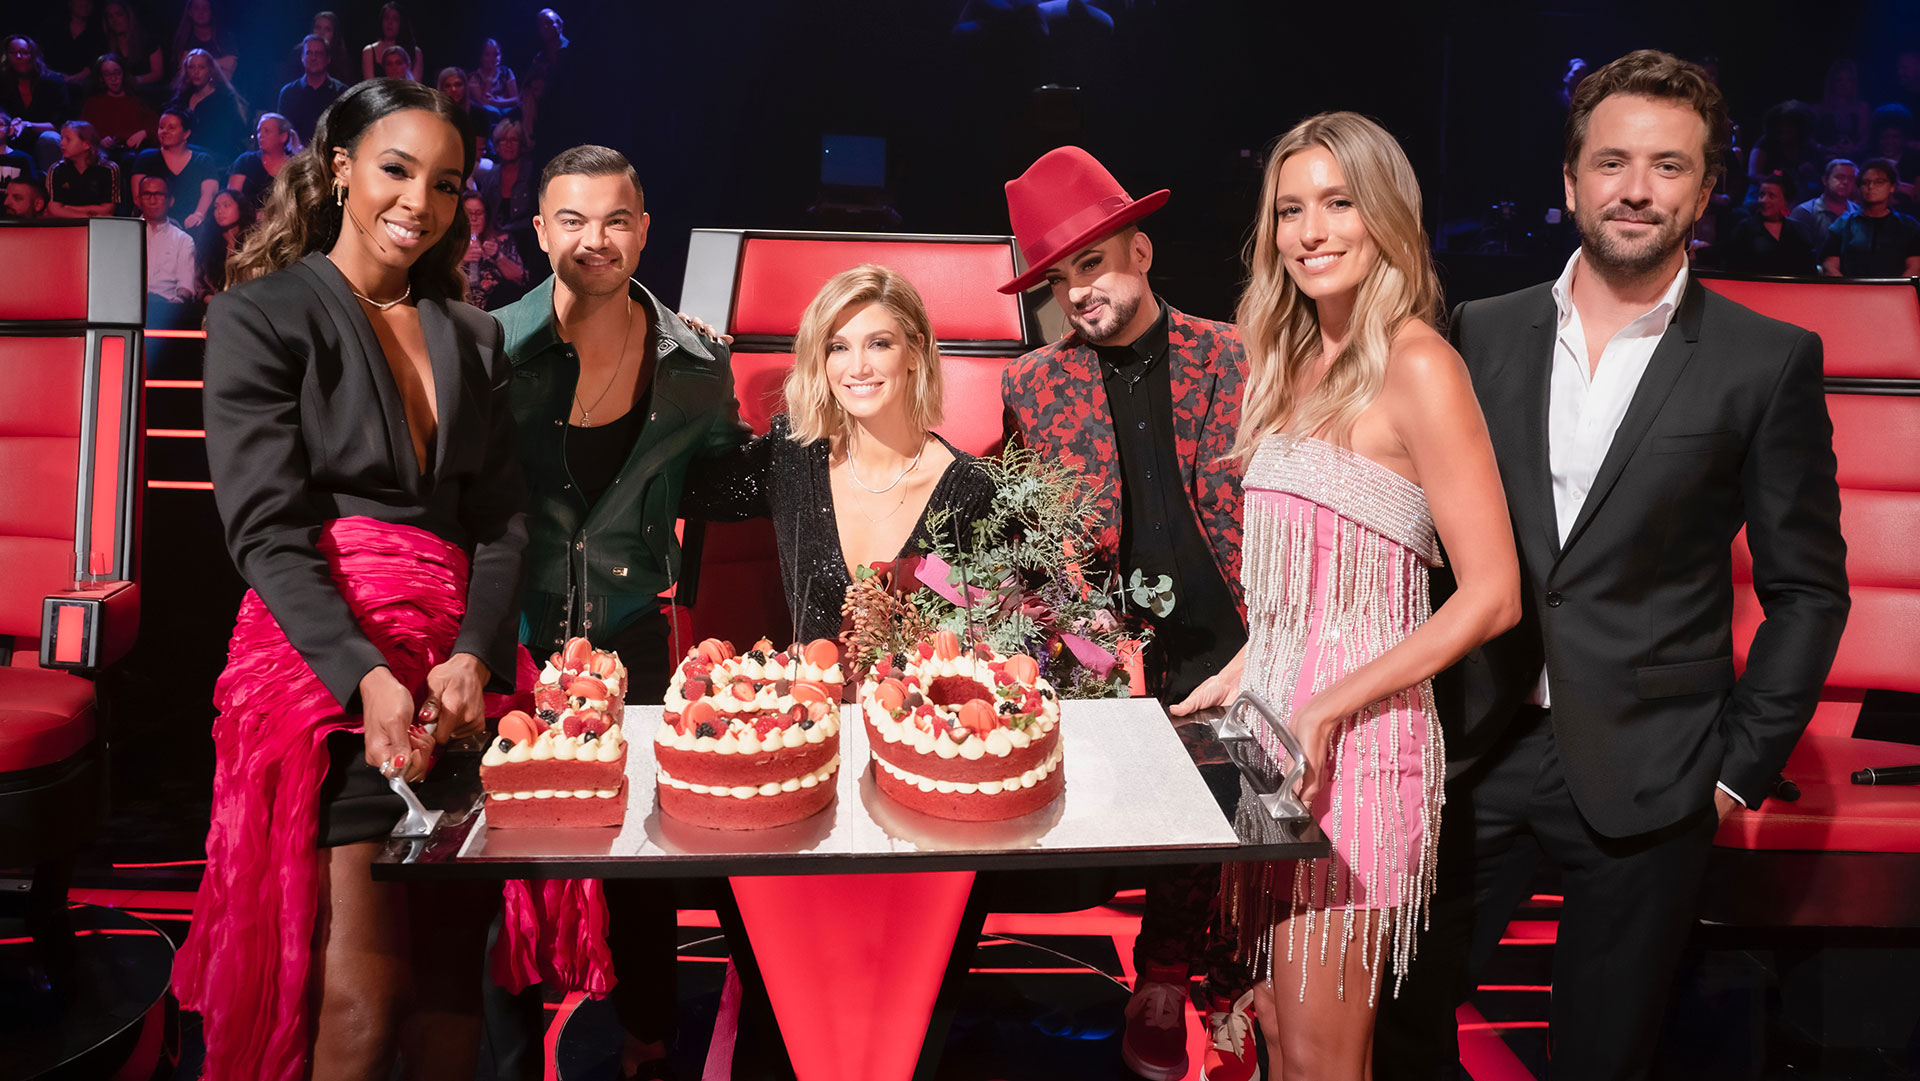 Take a look at some of the best and most powerful moments of Delta Goodrem on The Voice